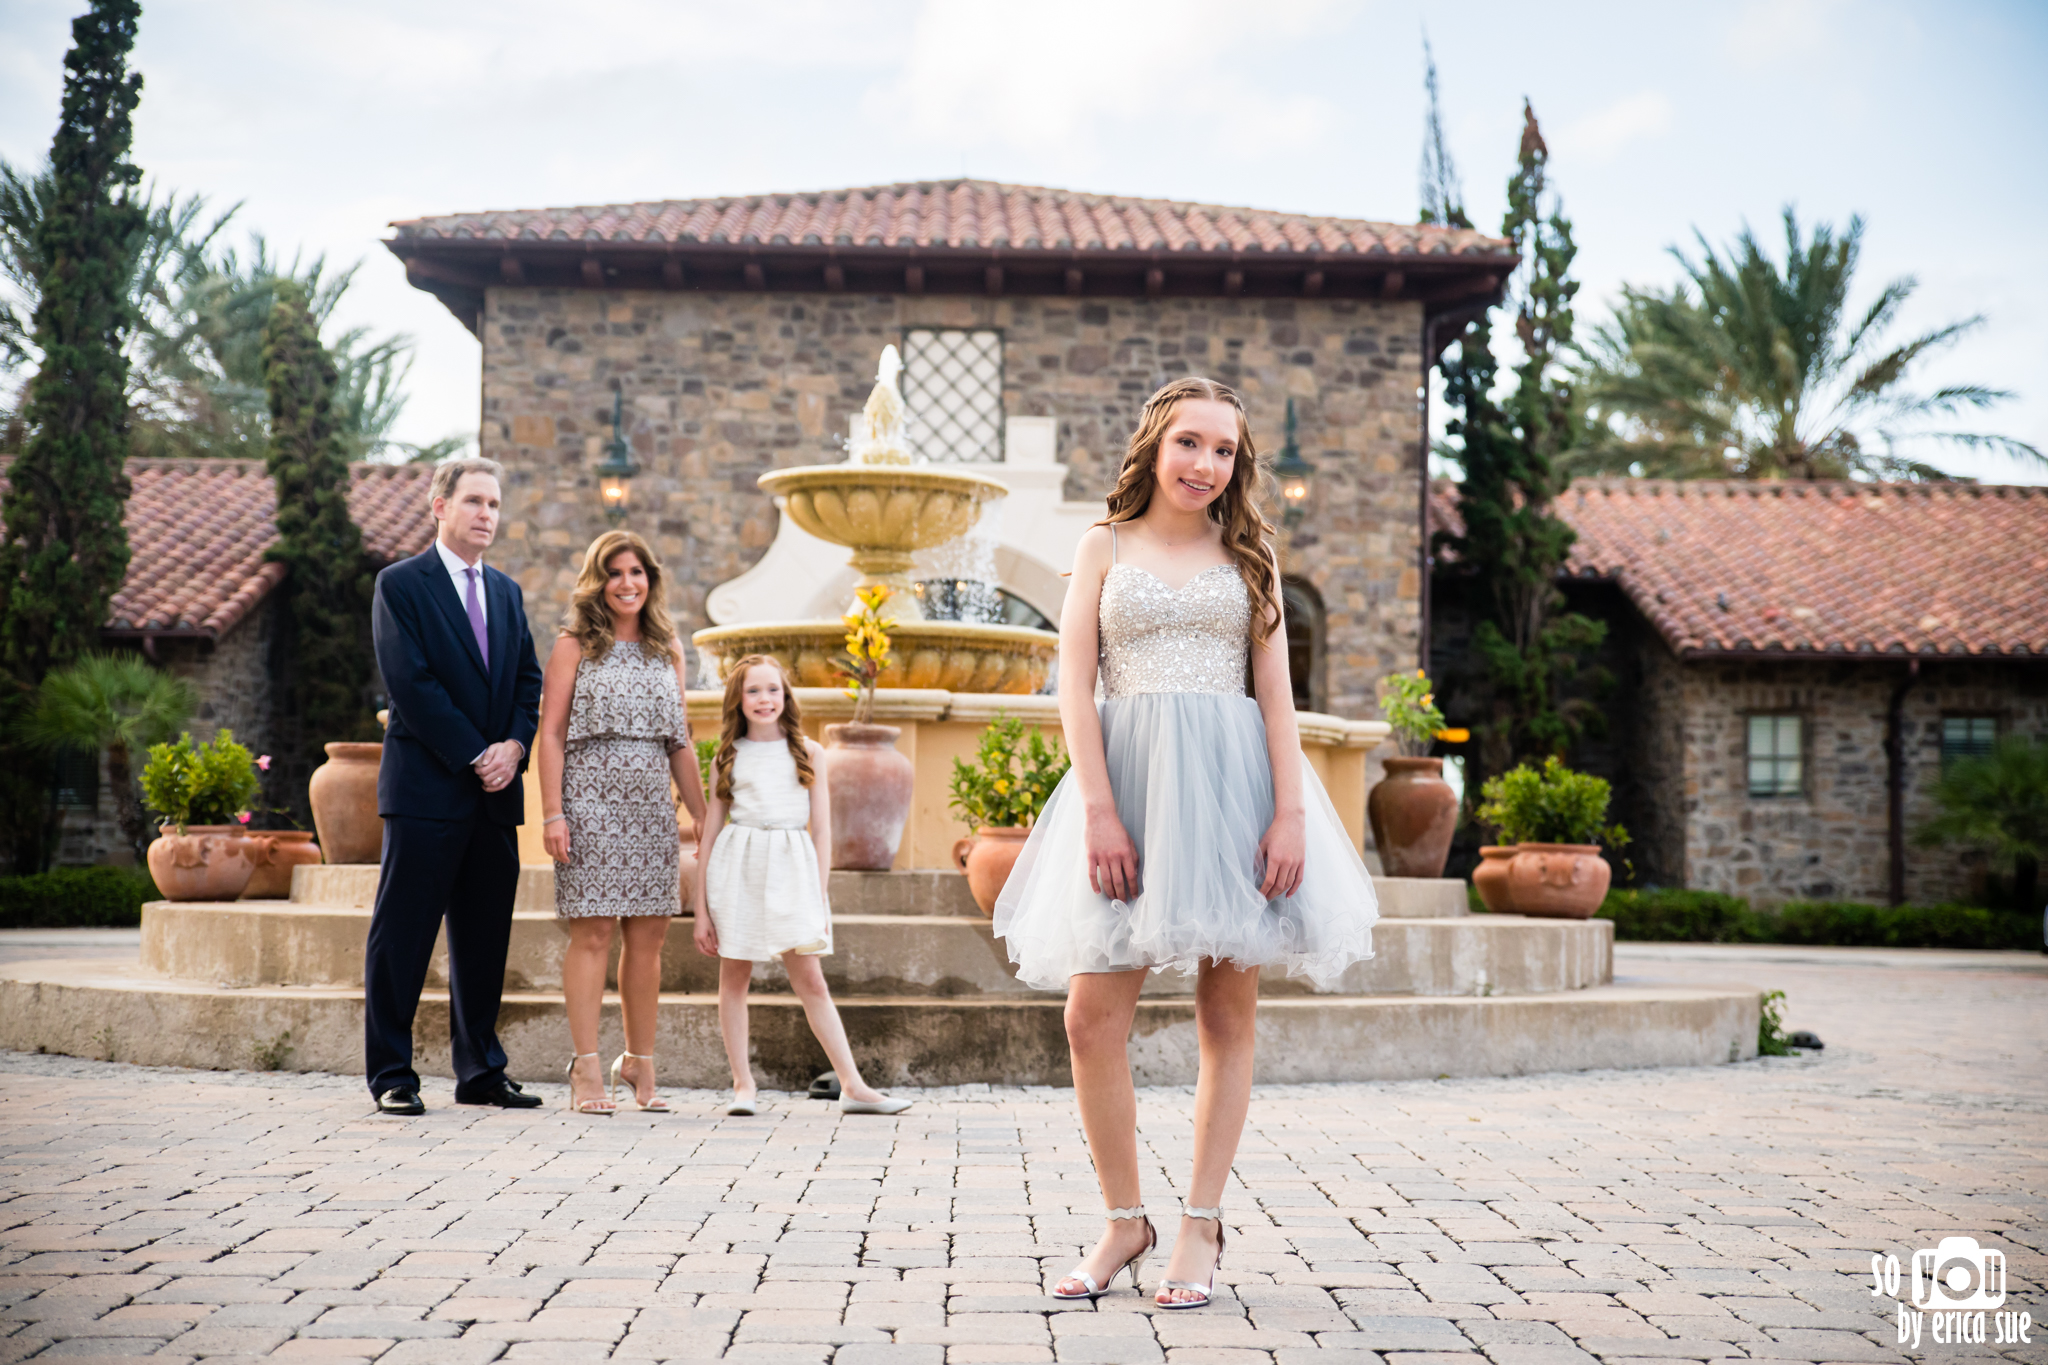 parkland-fl-mitzvah-photography-so-you-by-erica-sue-0714.jpg